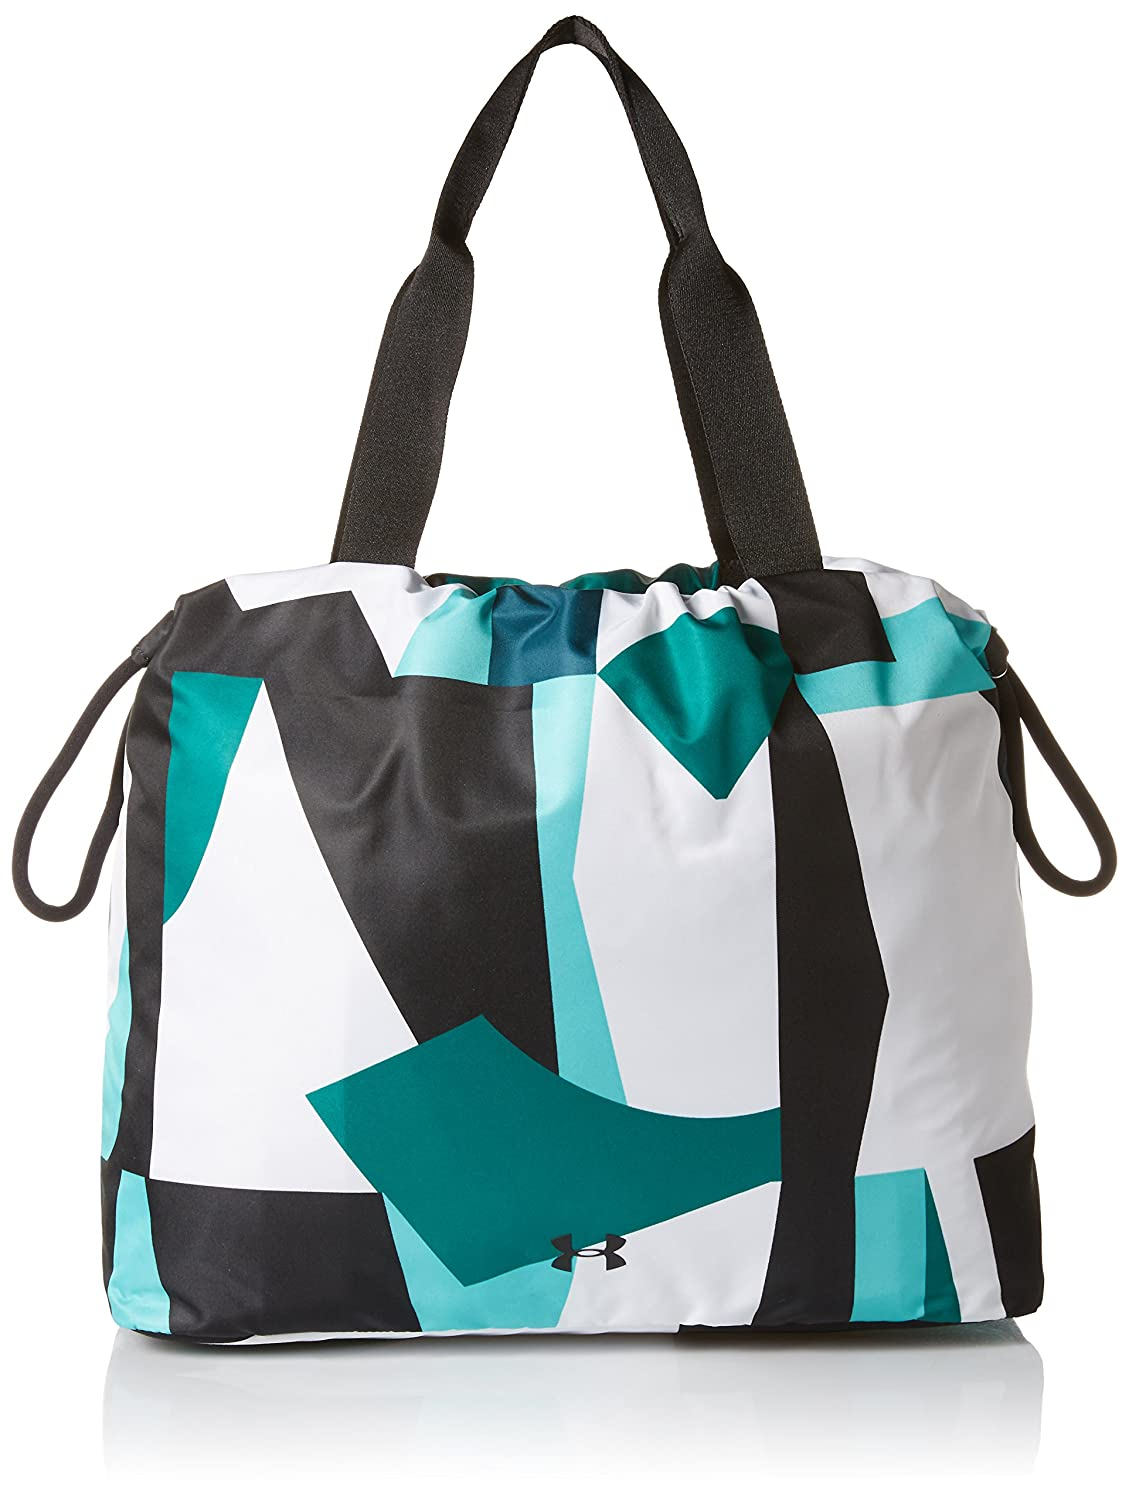 Under Armour Womens Cinch Printed Tote Bag Bag Black //Black One Size Under Armour Bags 1310168 003